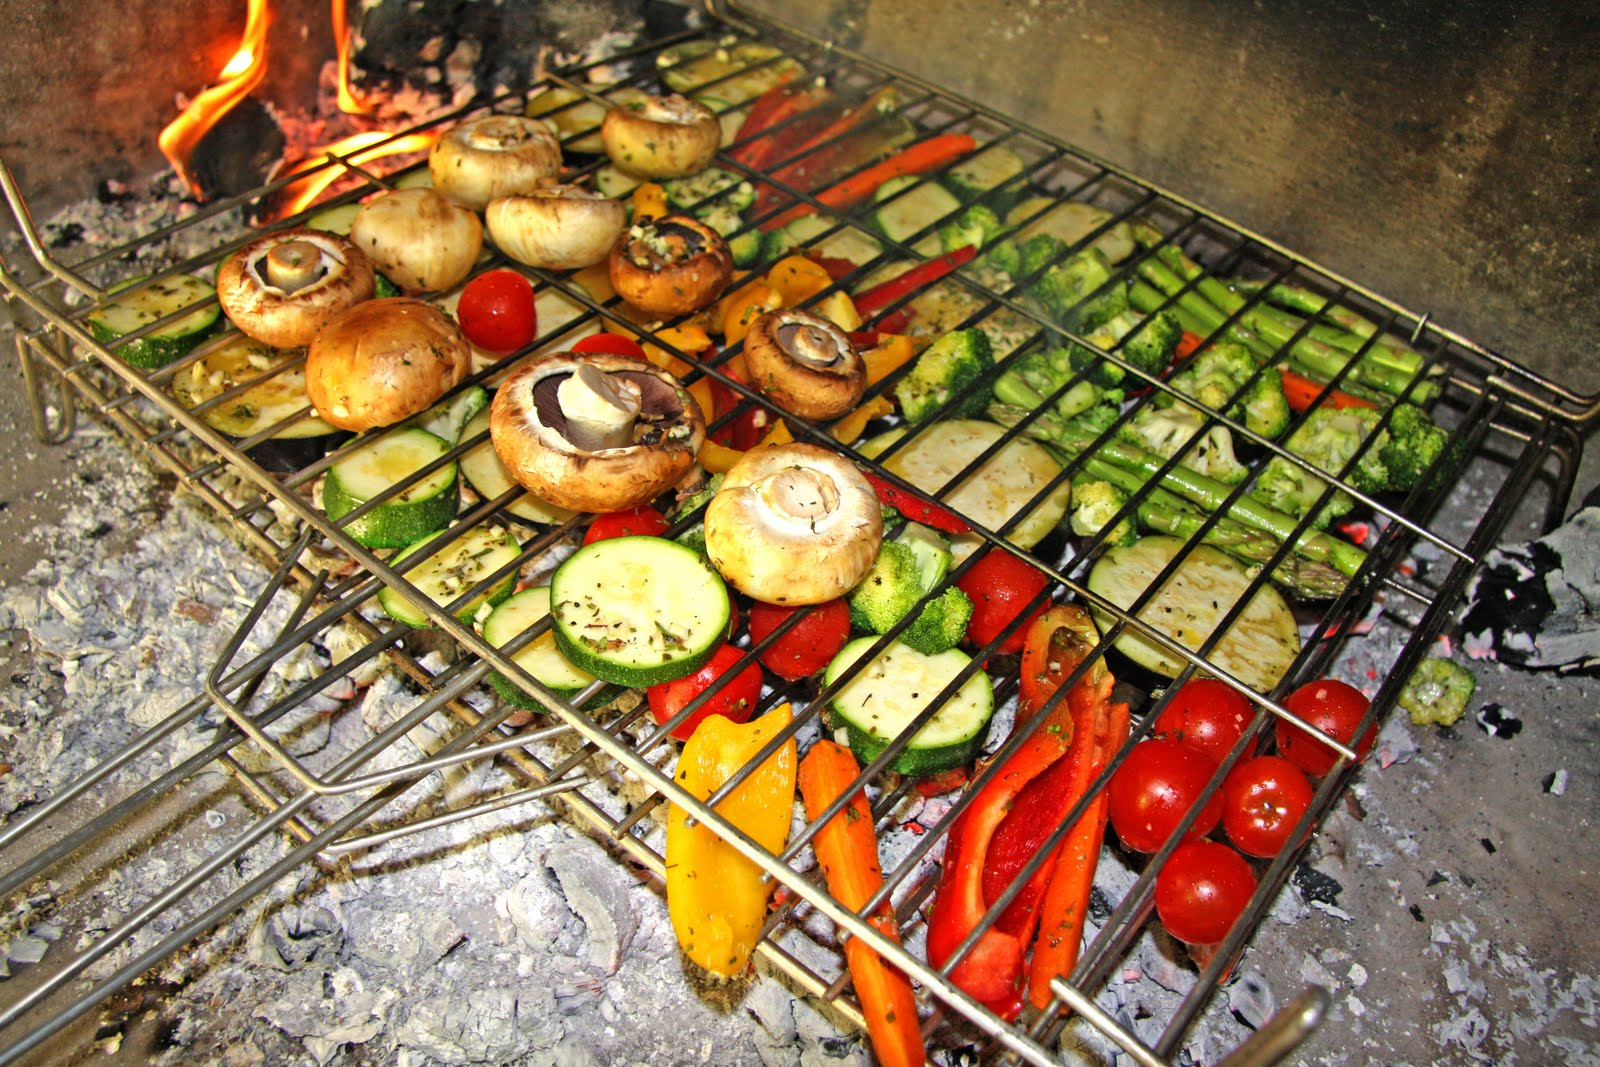 Cookbook verduras marinadas cocinadas a la parrilla for Parrilla para la casa